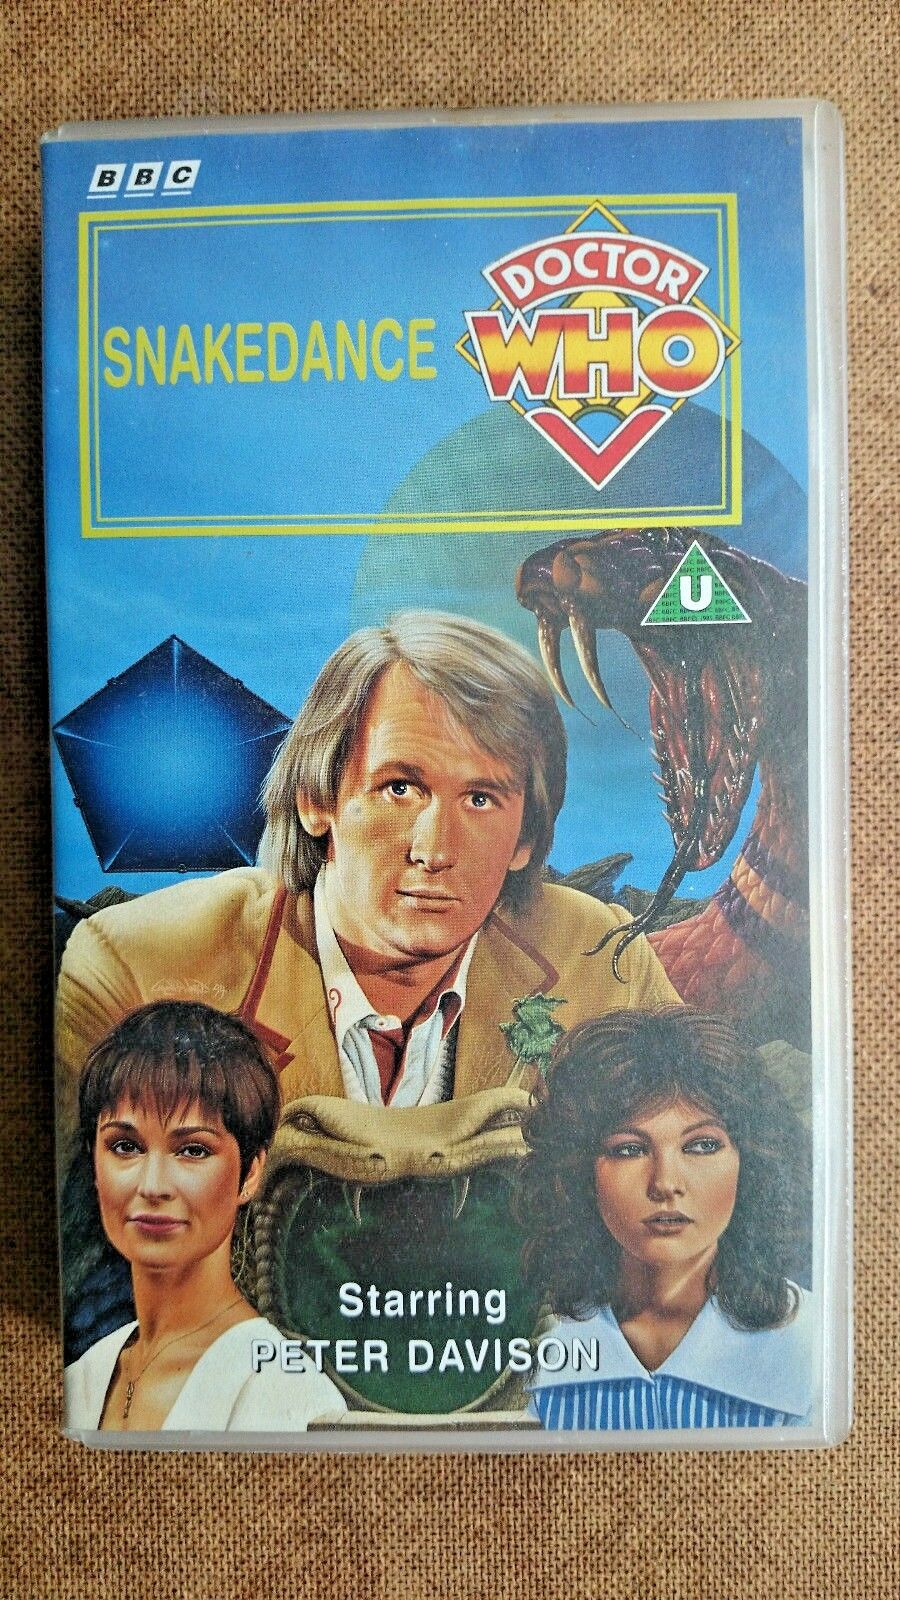 Doctor Who - Snakedance (VHS, 1994) - Peter Davidson